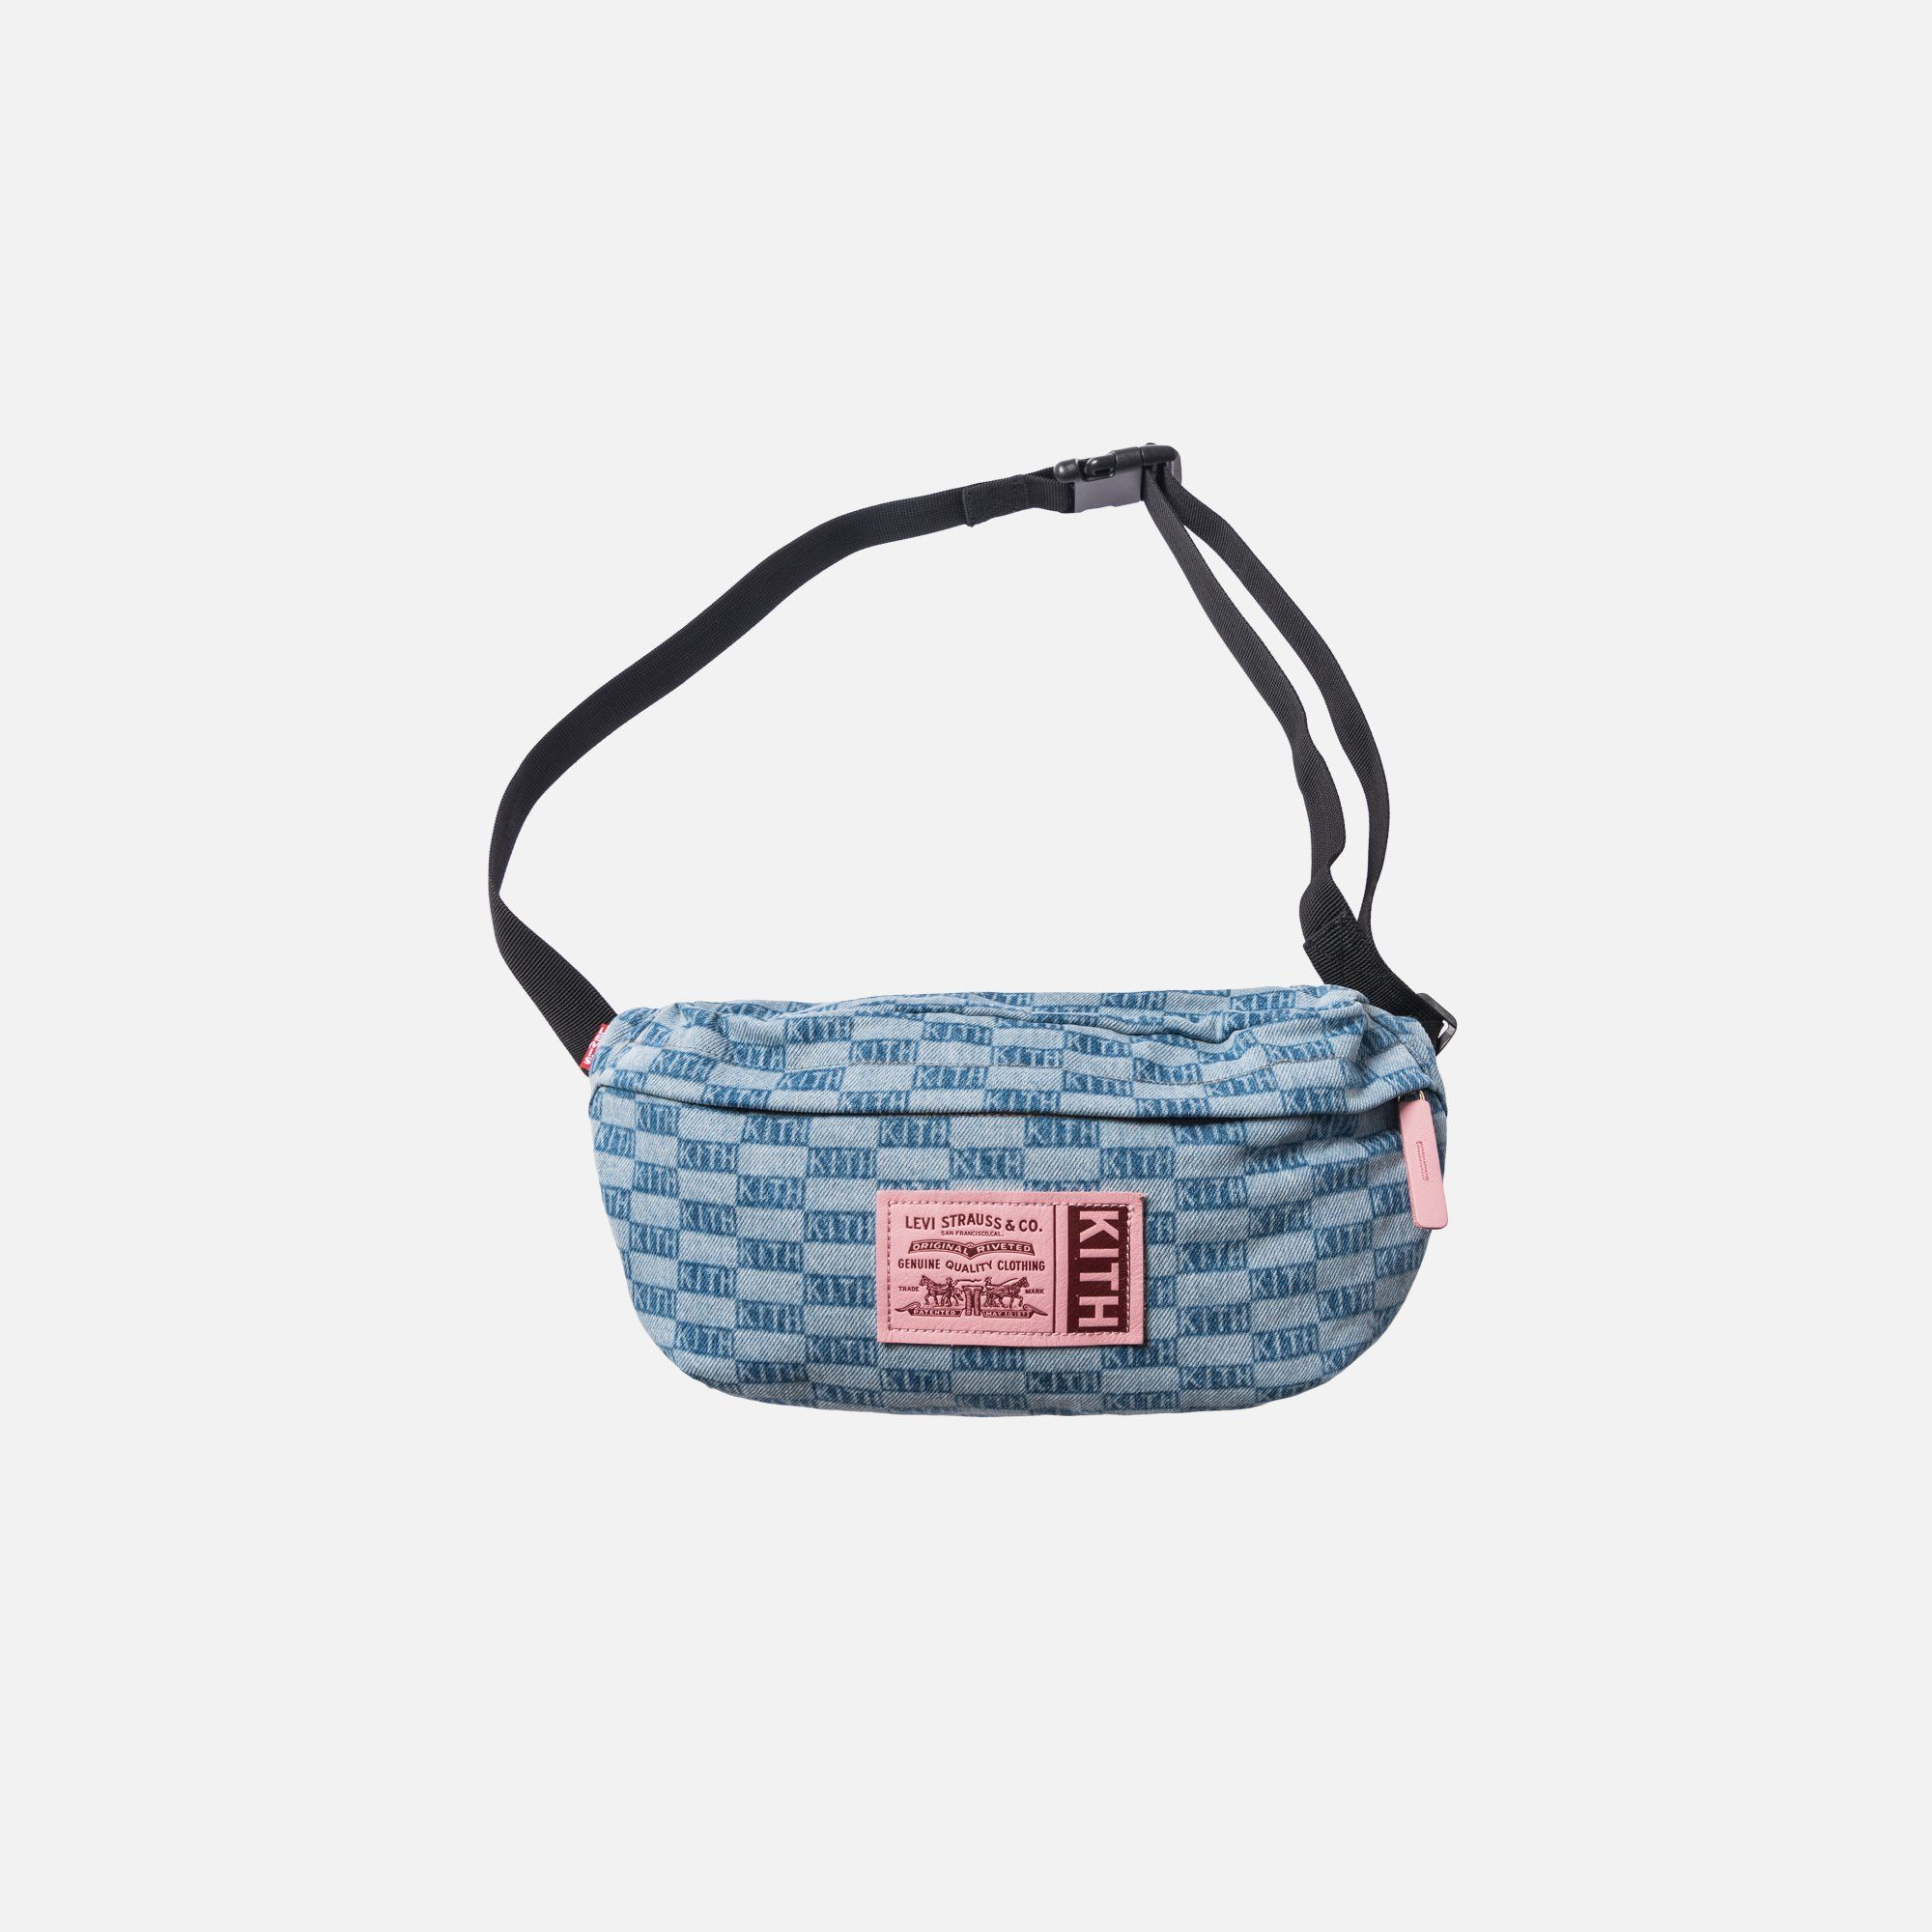 8b8bbee1 Kith x Levi's Salt Bleach AOP Crossbody Bag - Light Blue | bags in ...